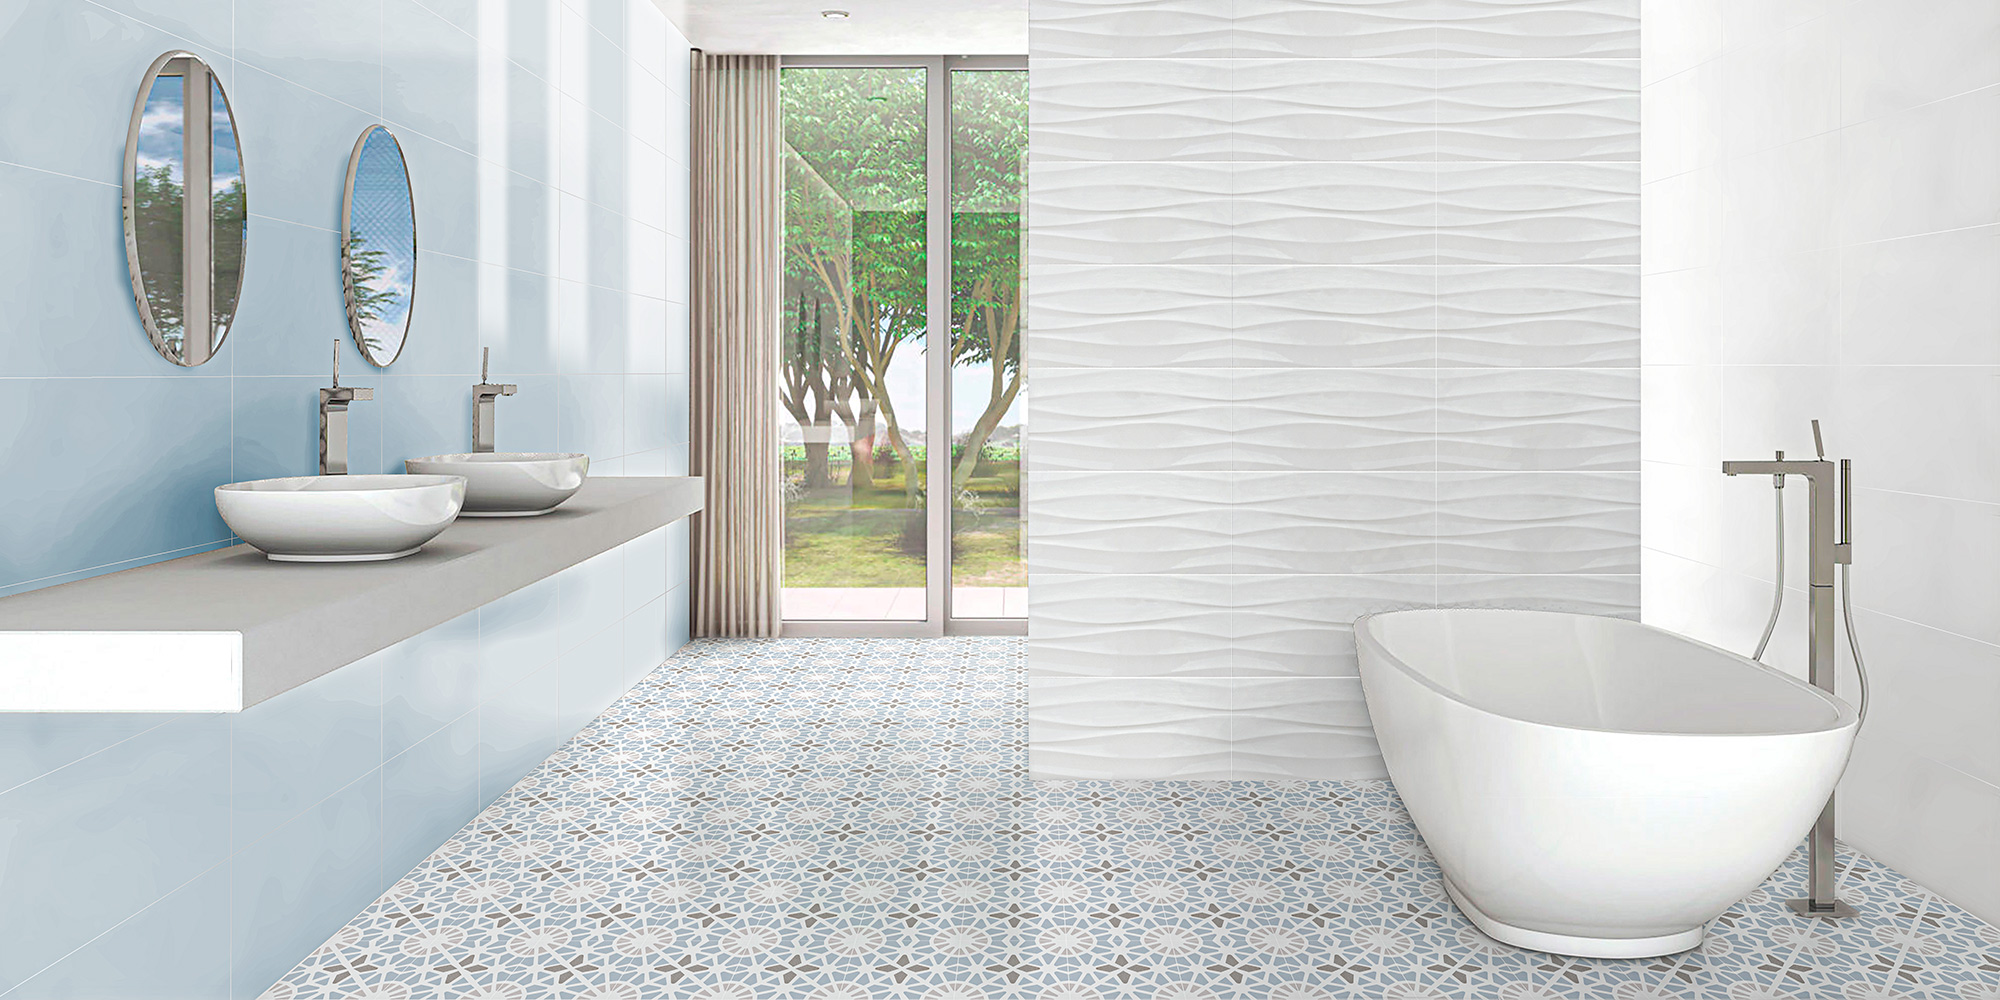 Sweet and Adele. Monocolour wall tiles with a patterned floor.